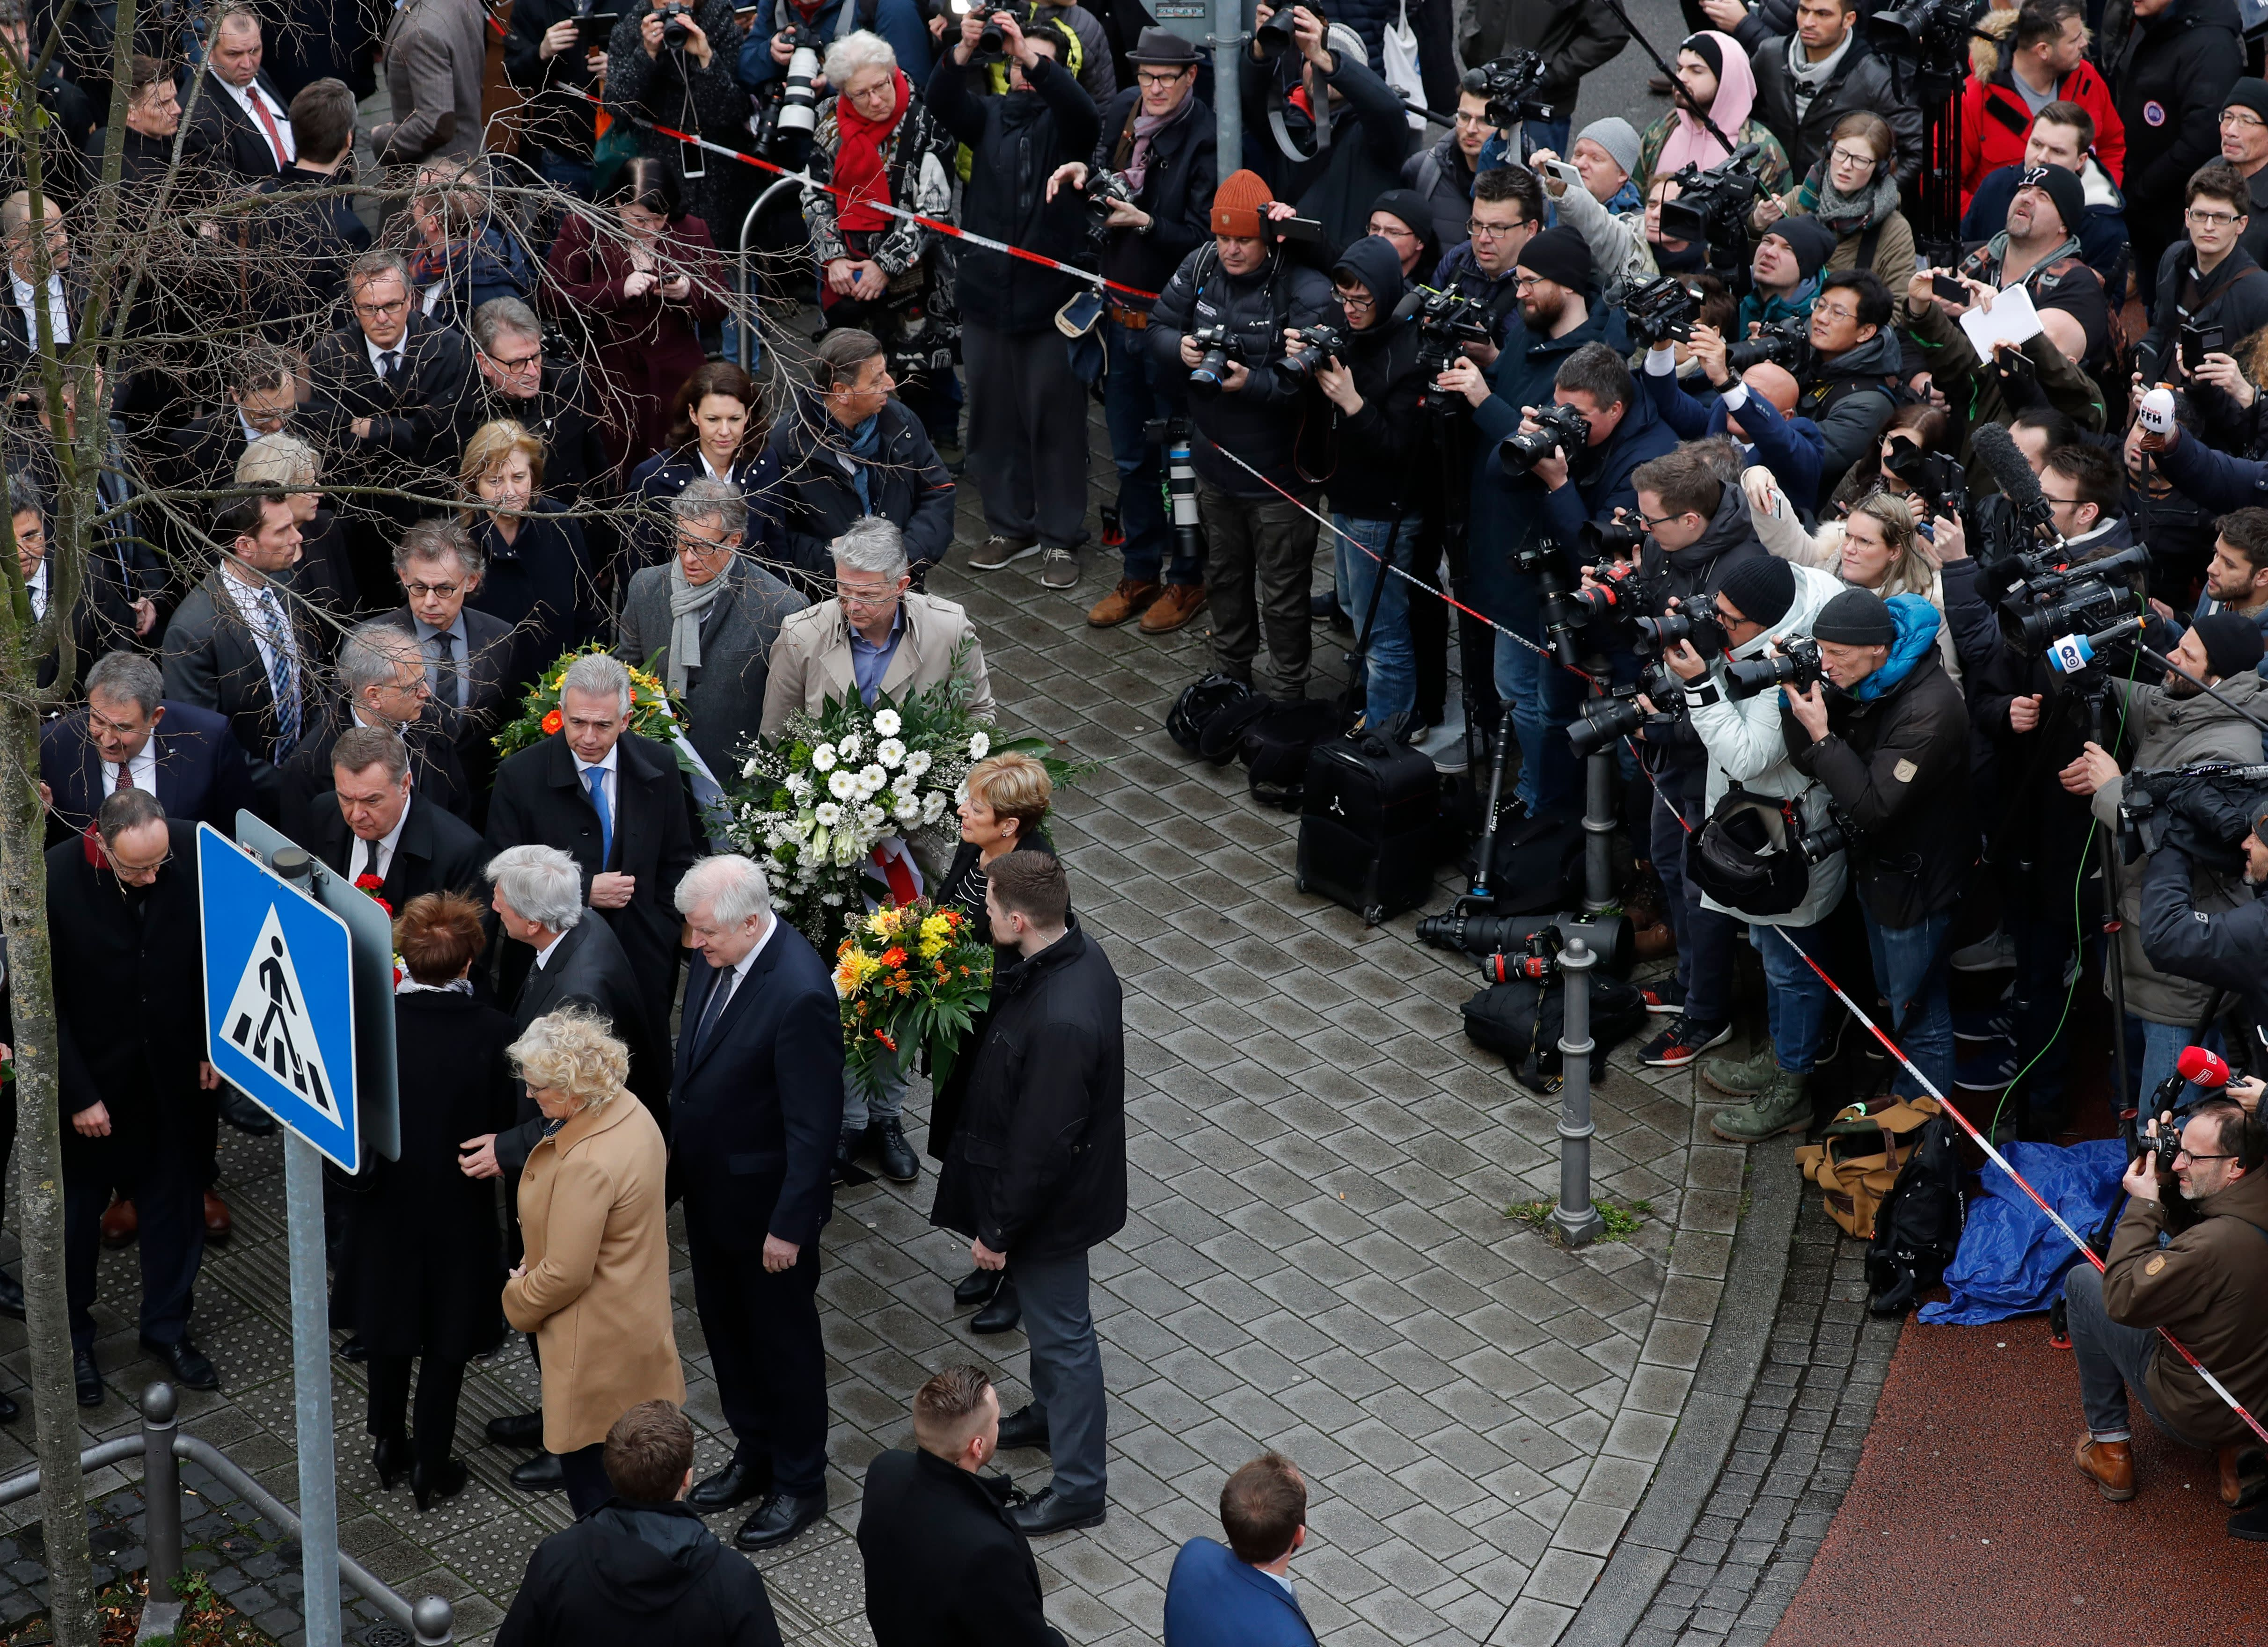 (L-R) German Justice Minister Christine Lambrecht, German Interior Minister Horst Seehofer, Hesse's State Premier Volker Bouffier and Hesse state Interior Minister Peter Beuth arrive to lay flowers in the area of the bar targeted in a shooting at the Heumarkt in the centre of Hanau, near Frankfurt am Main, western Germany, on February 20, 2020, after at least nine people were killed in two shootings late on February 19, 2020. - The suspect in two shootings in Germany that killed at least nine people was found dead at home, police said on February 20, 2020. At least nine people were killed in two shootings late on February 19 in Hanau, near the German city of Frankfurt. (Photo by Odd ANDERSEN / AFP) (Photo by ODD ANDERSEN/AFP via Getty Images)